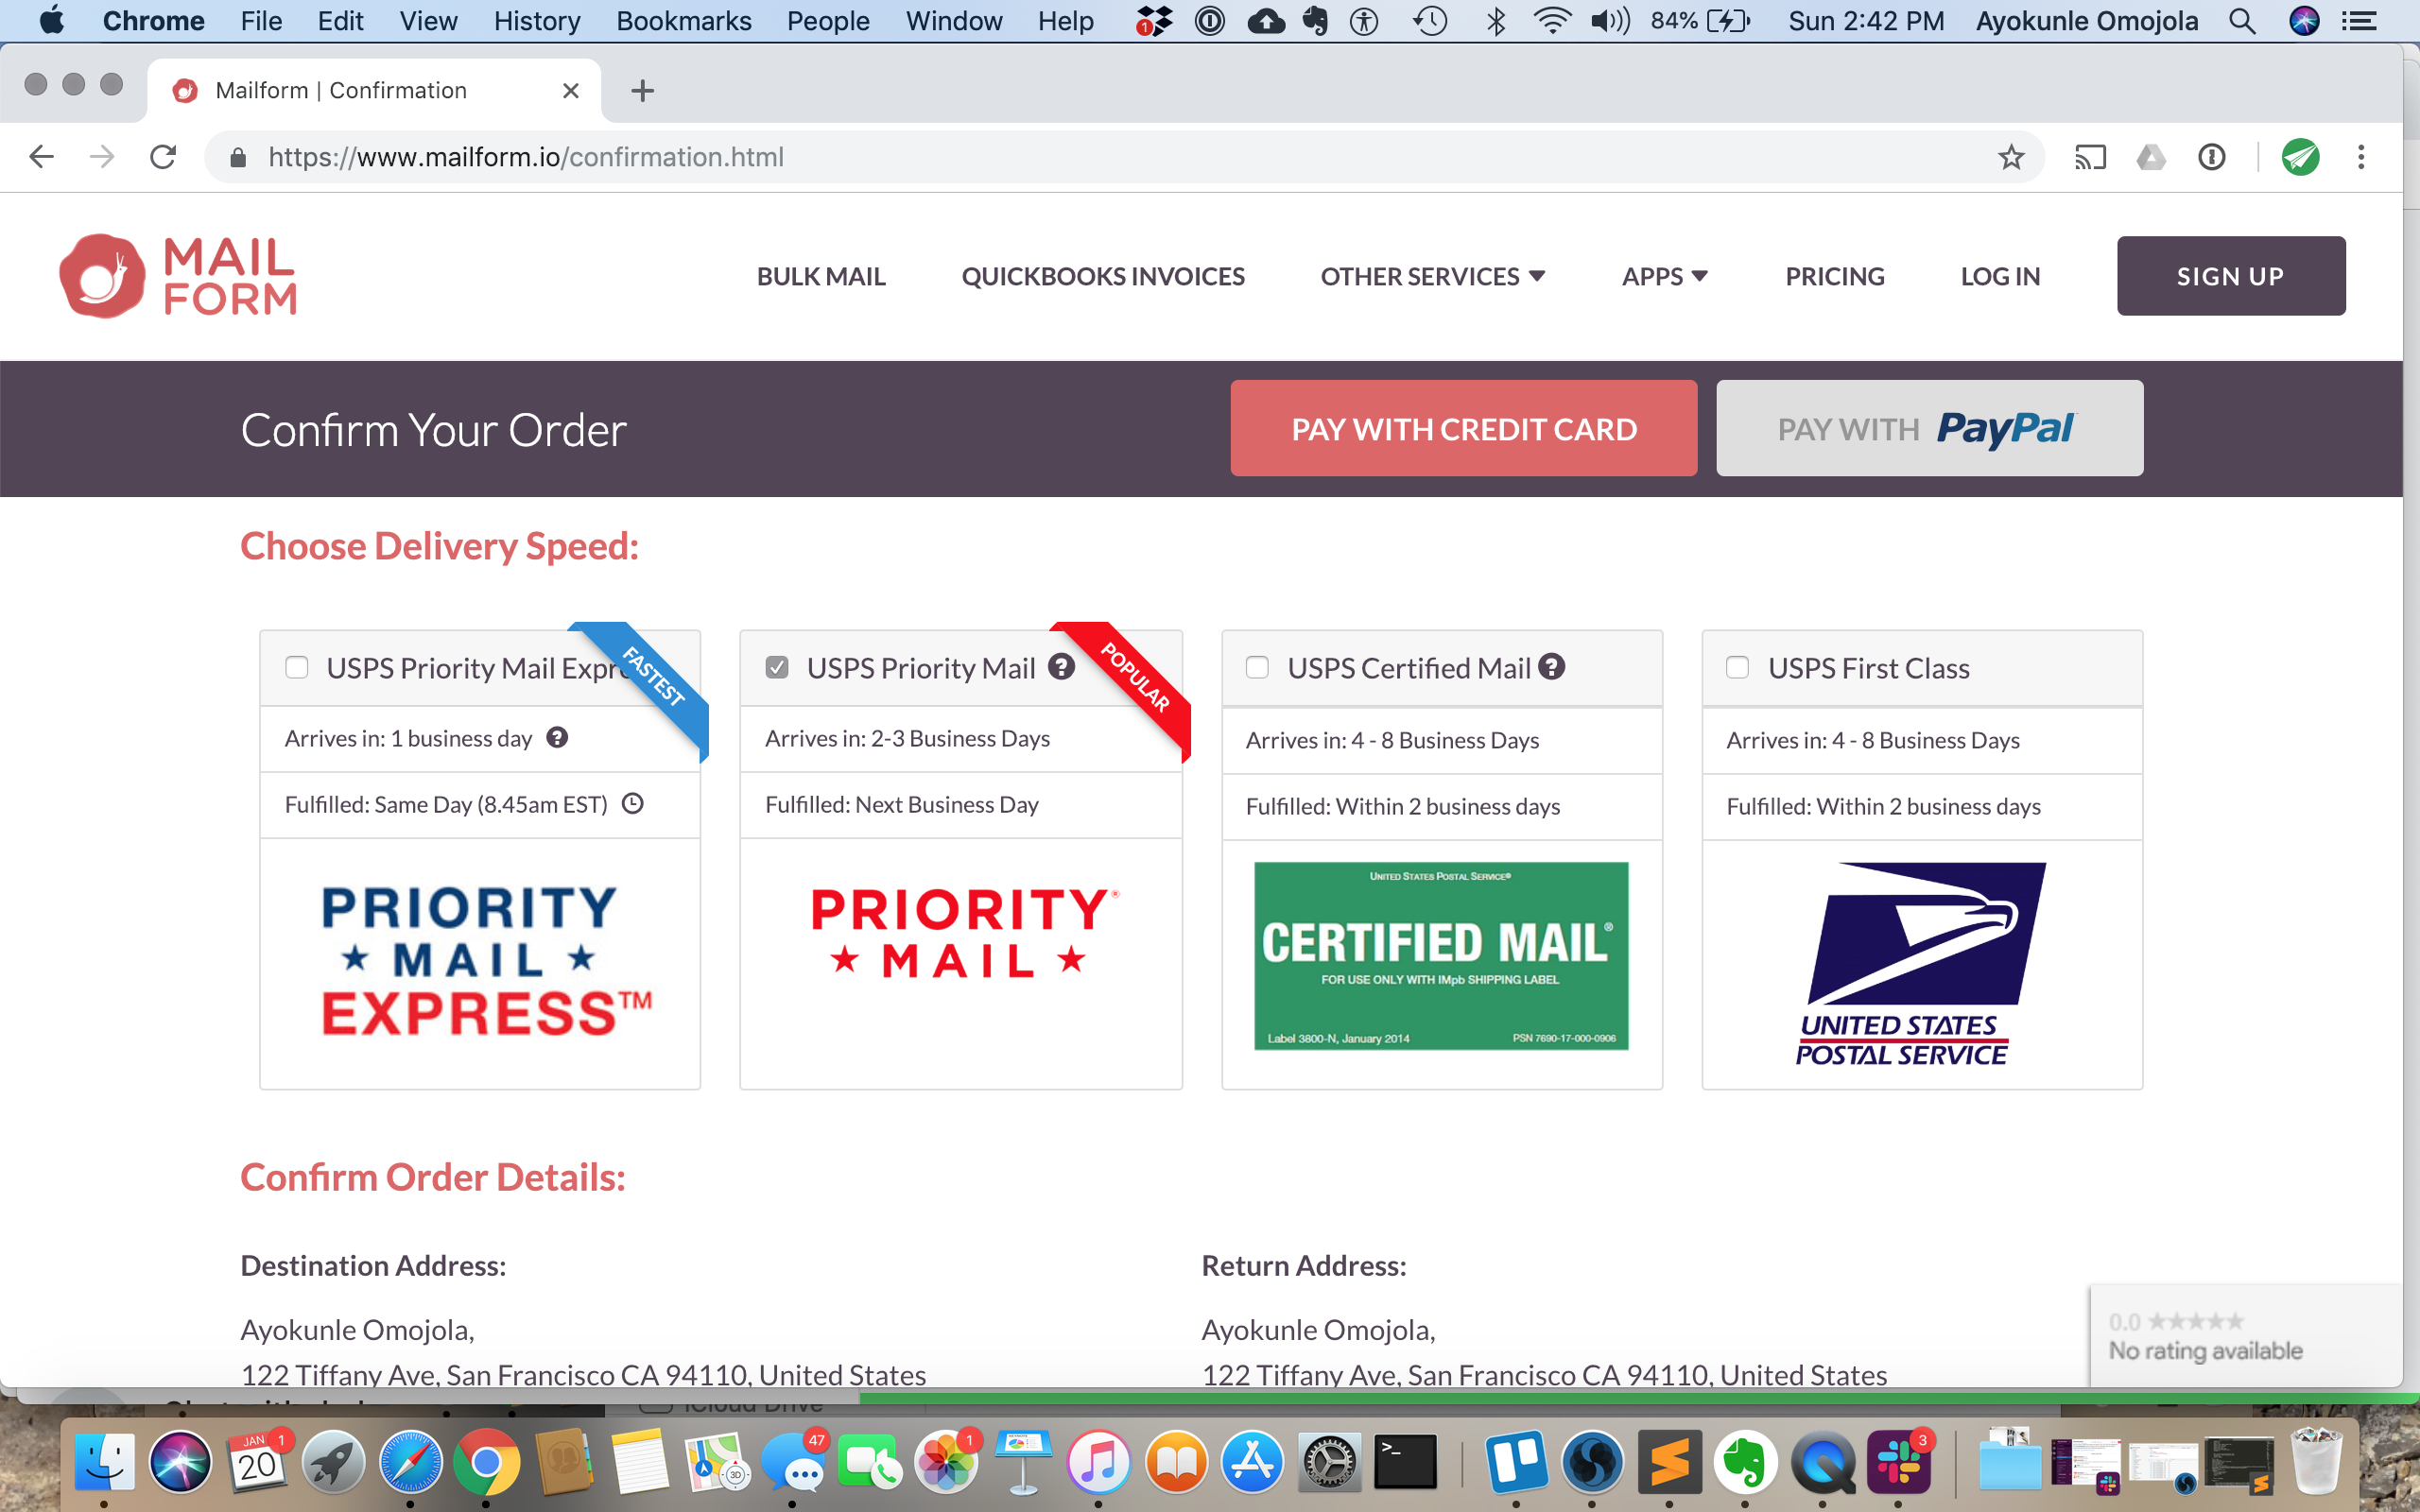 Choose your options and select Priority Mail or Priority Mail Express